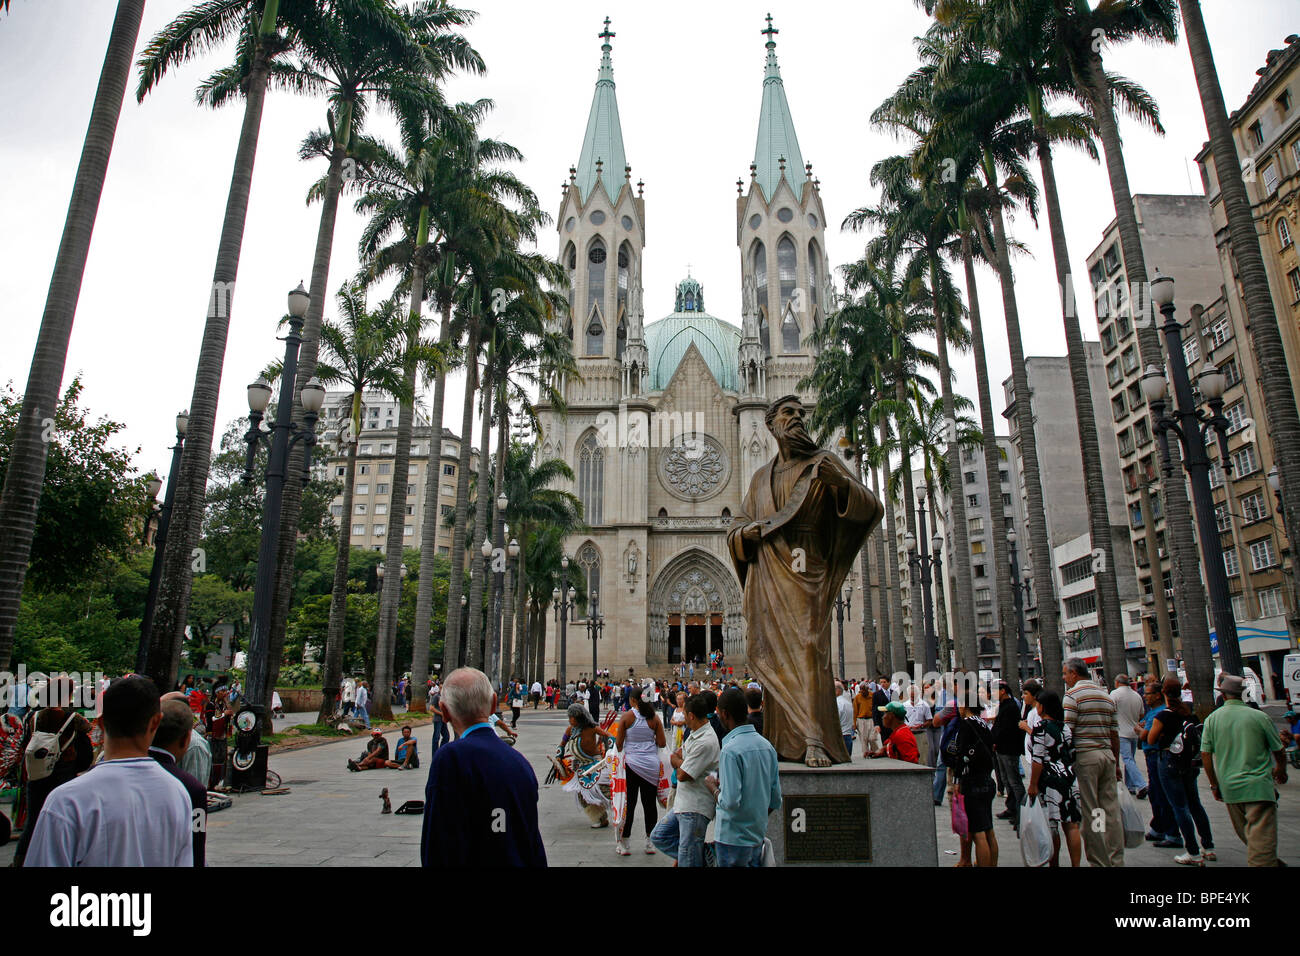 Catedral da Sé, Sao Paulo, Brésil. Photo Stock